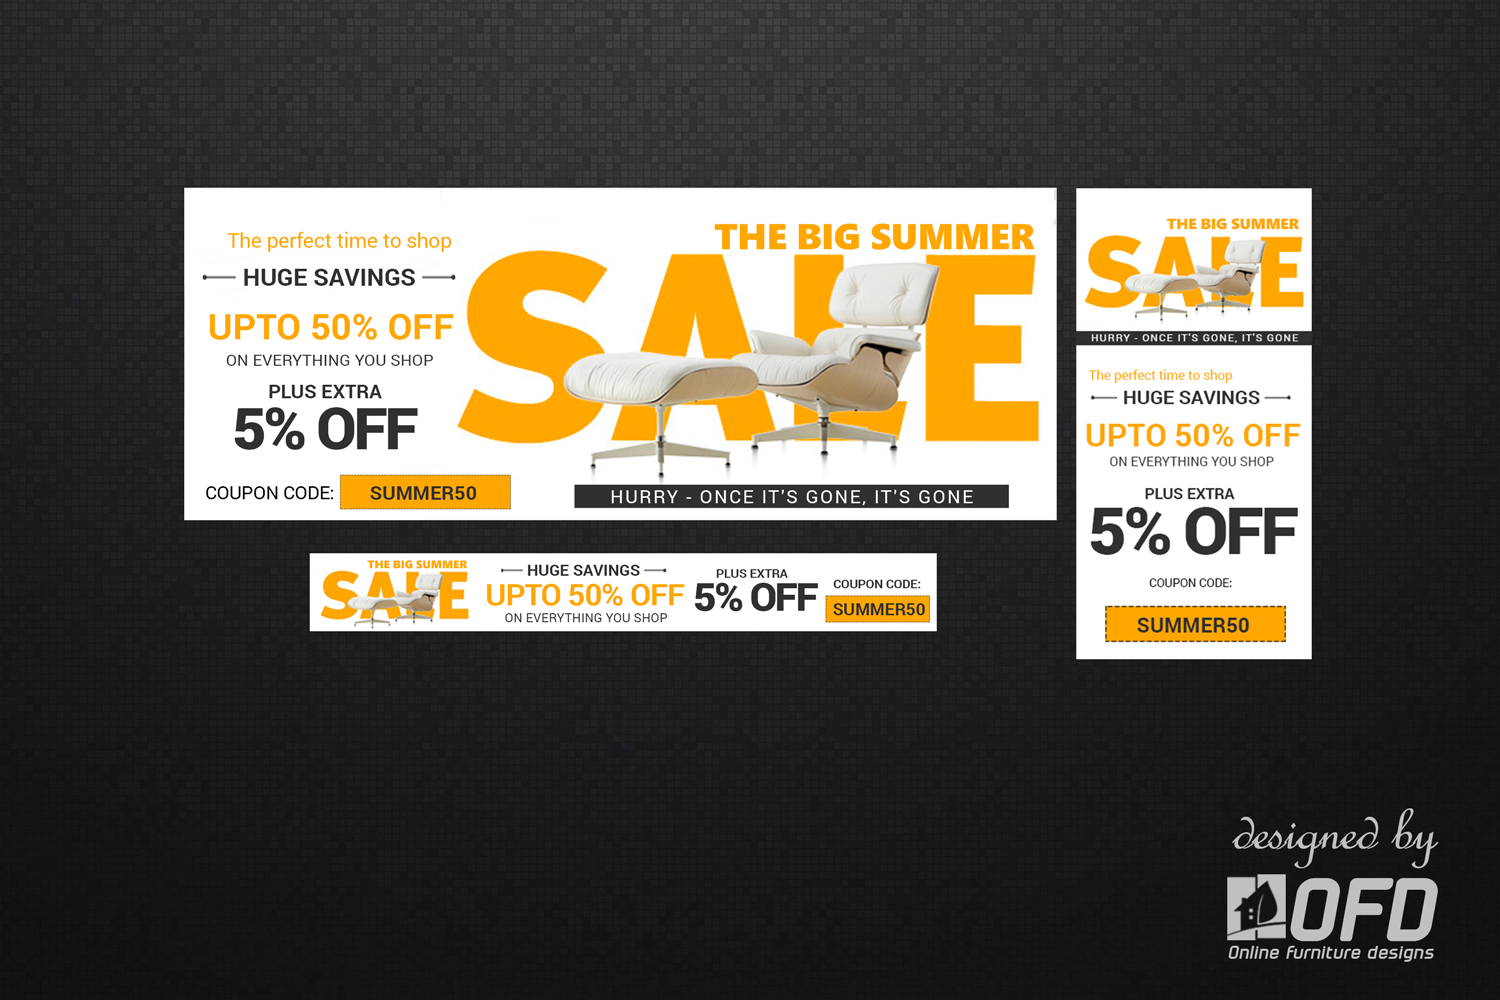 the The-big-summer-sale